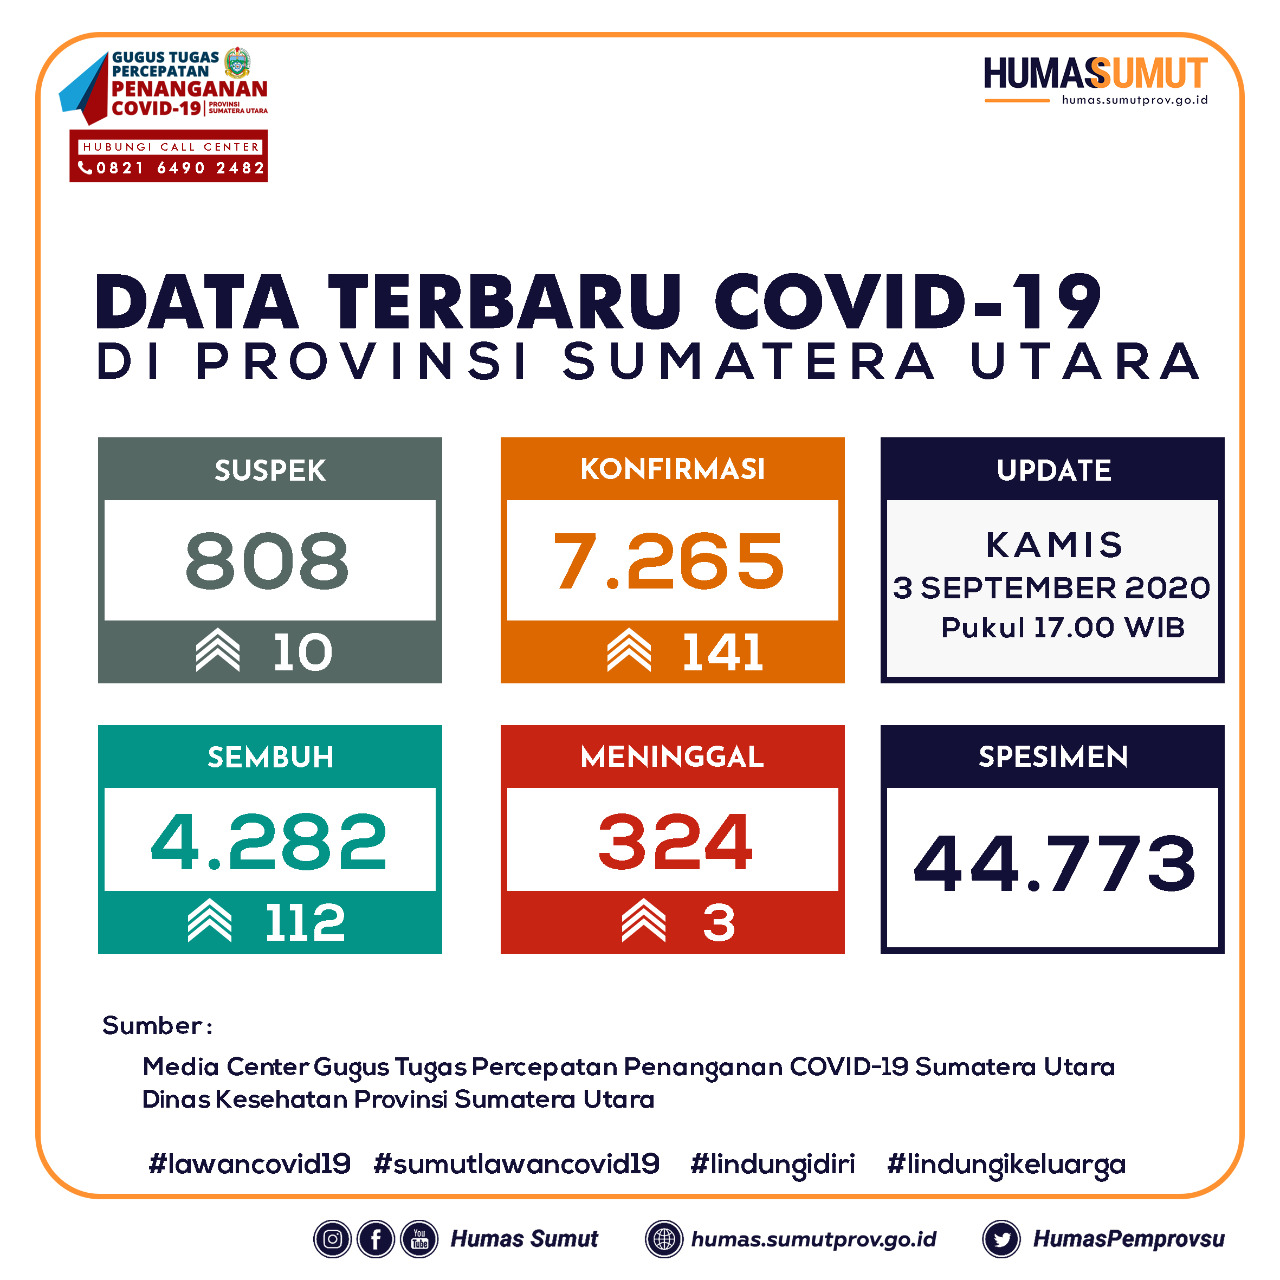 Update Data Covid-19 di Sumatera Utara 3 September 2020